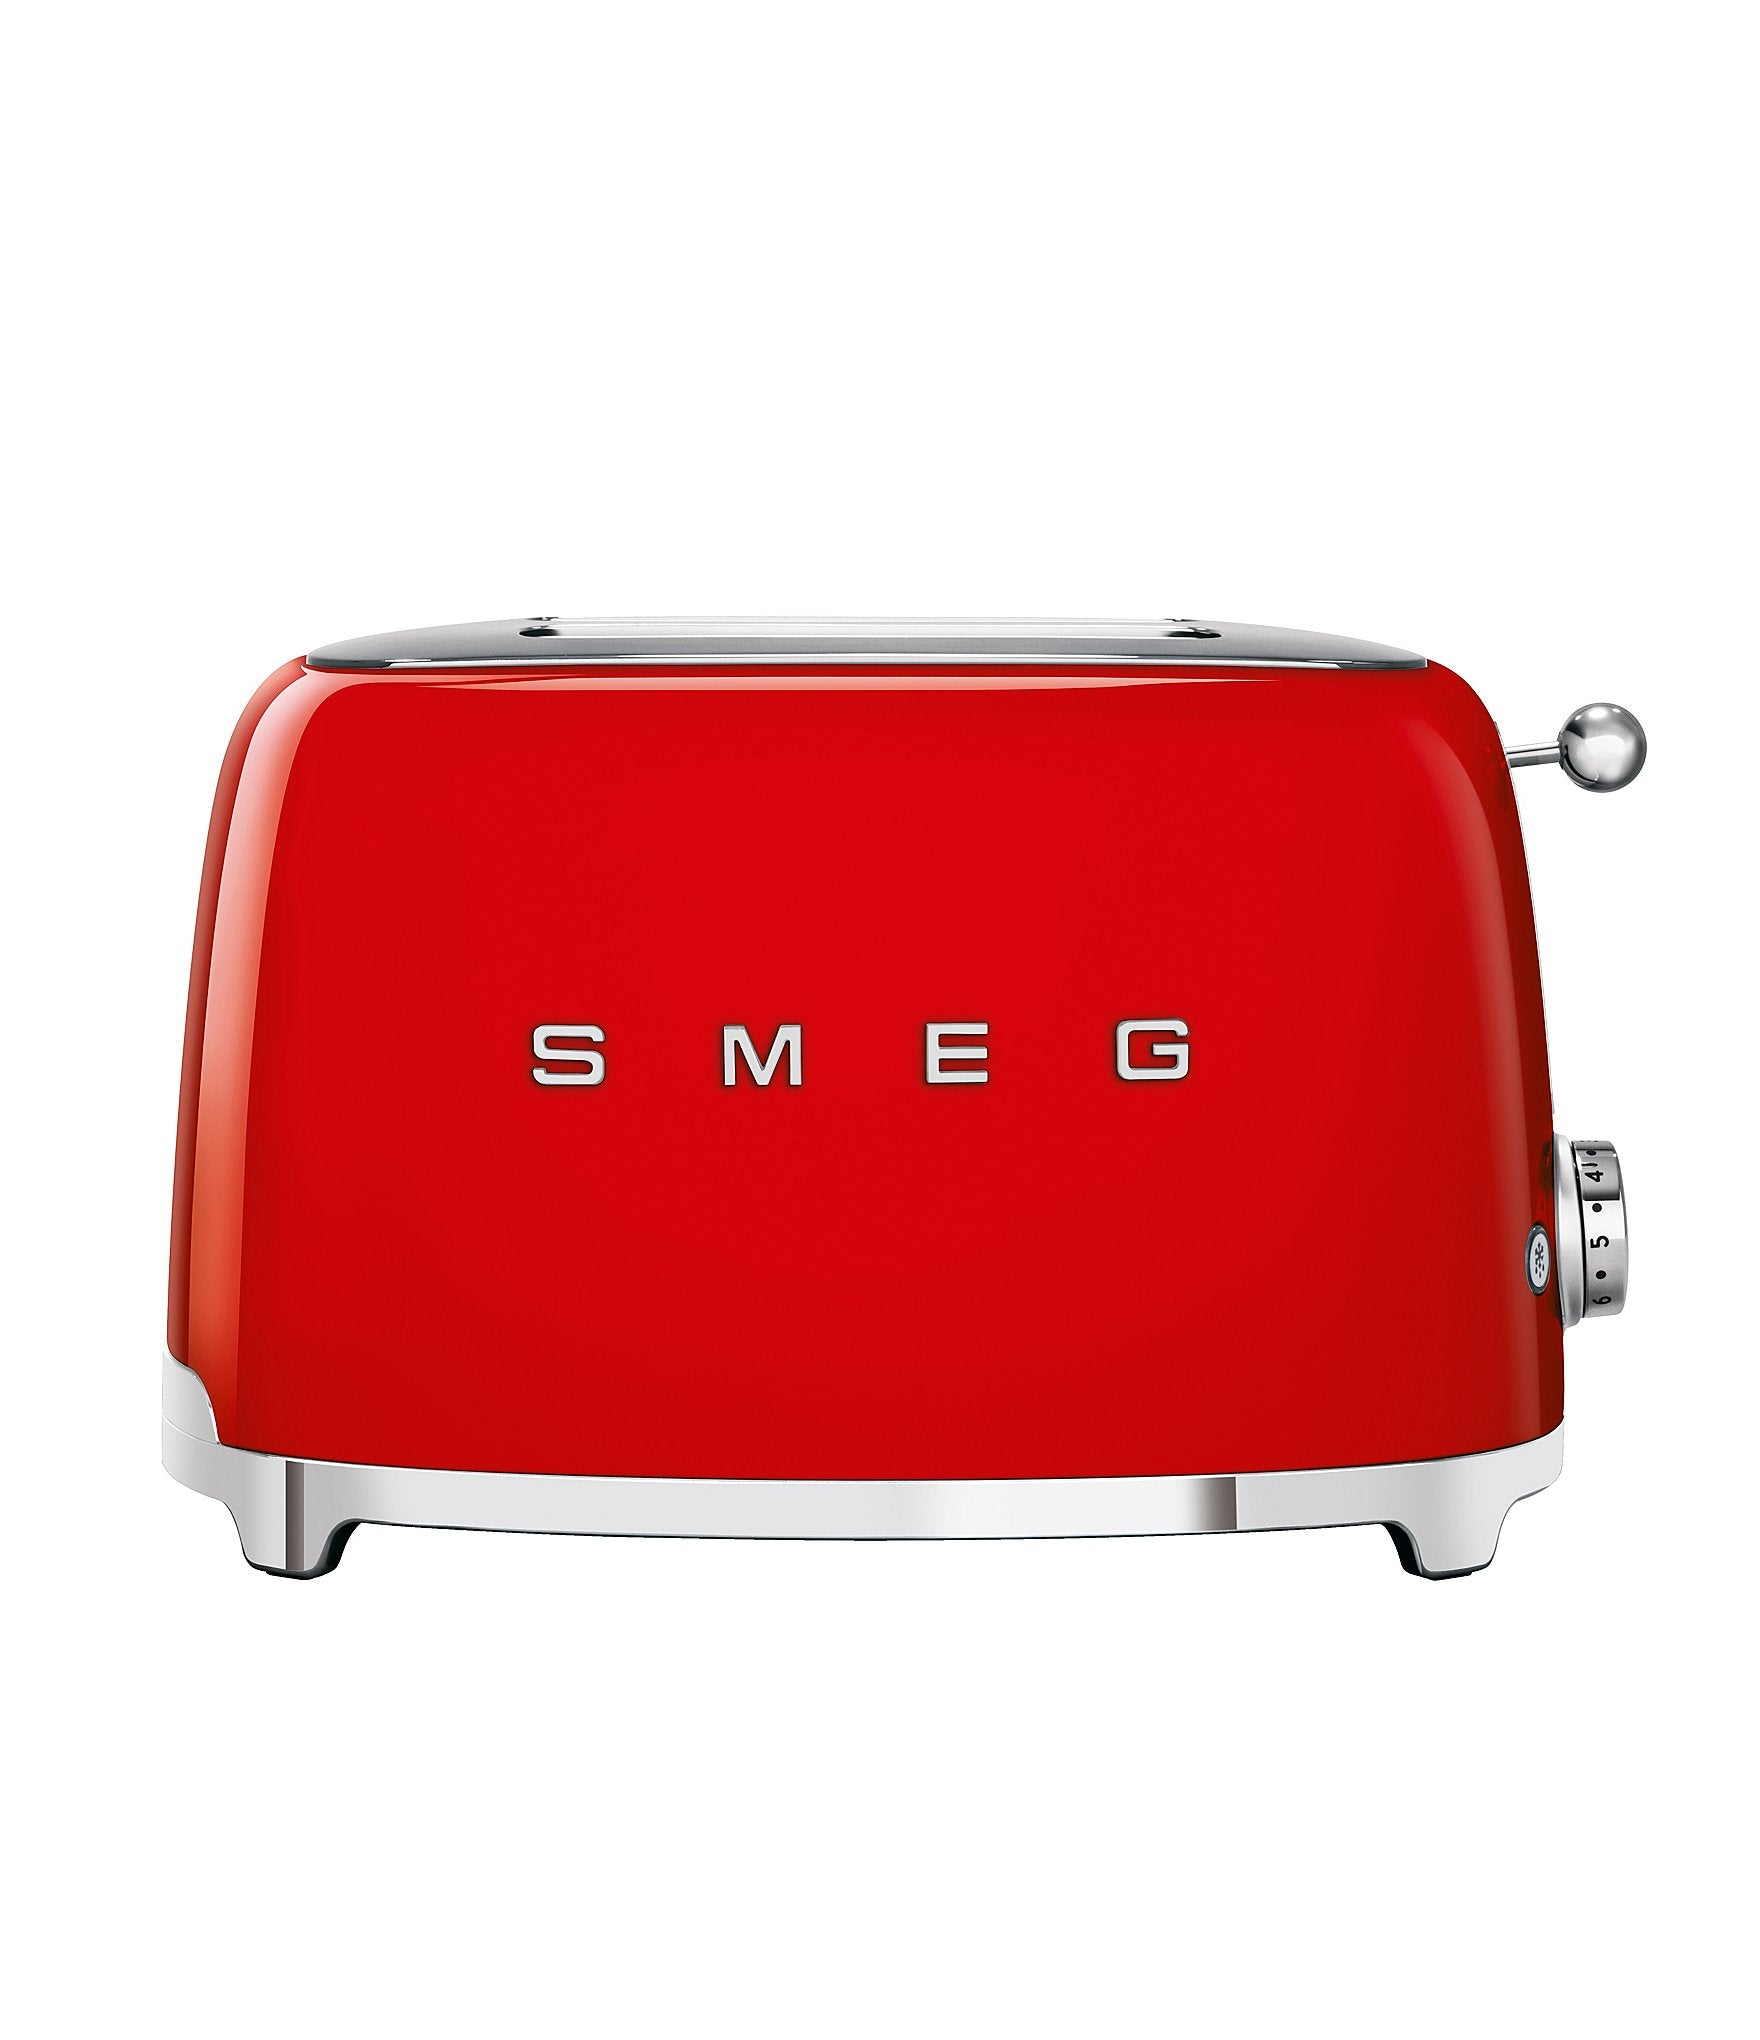 Red and silver Smeg 2 Slice Toaster